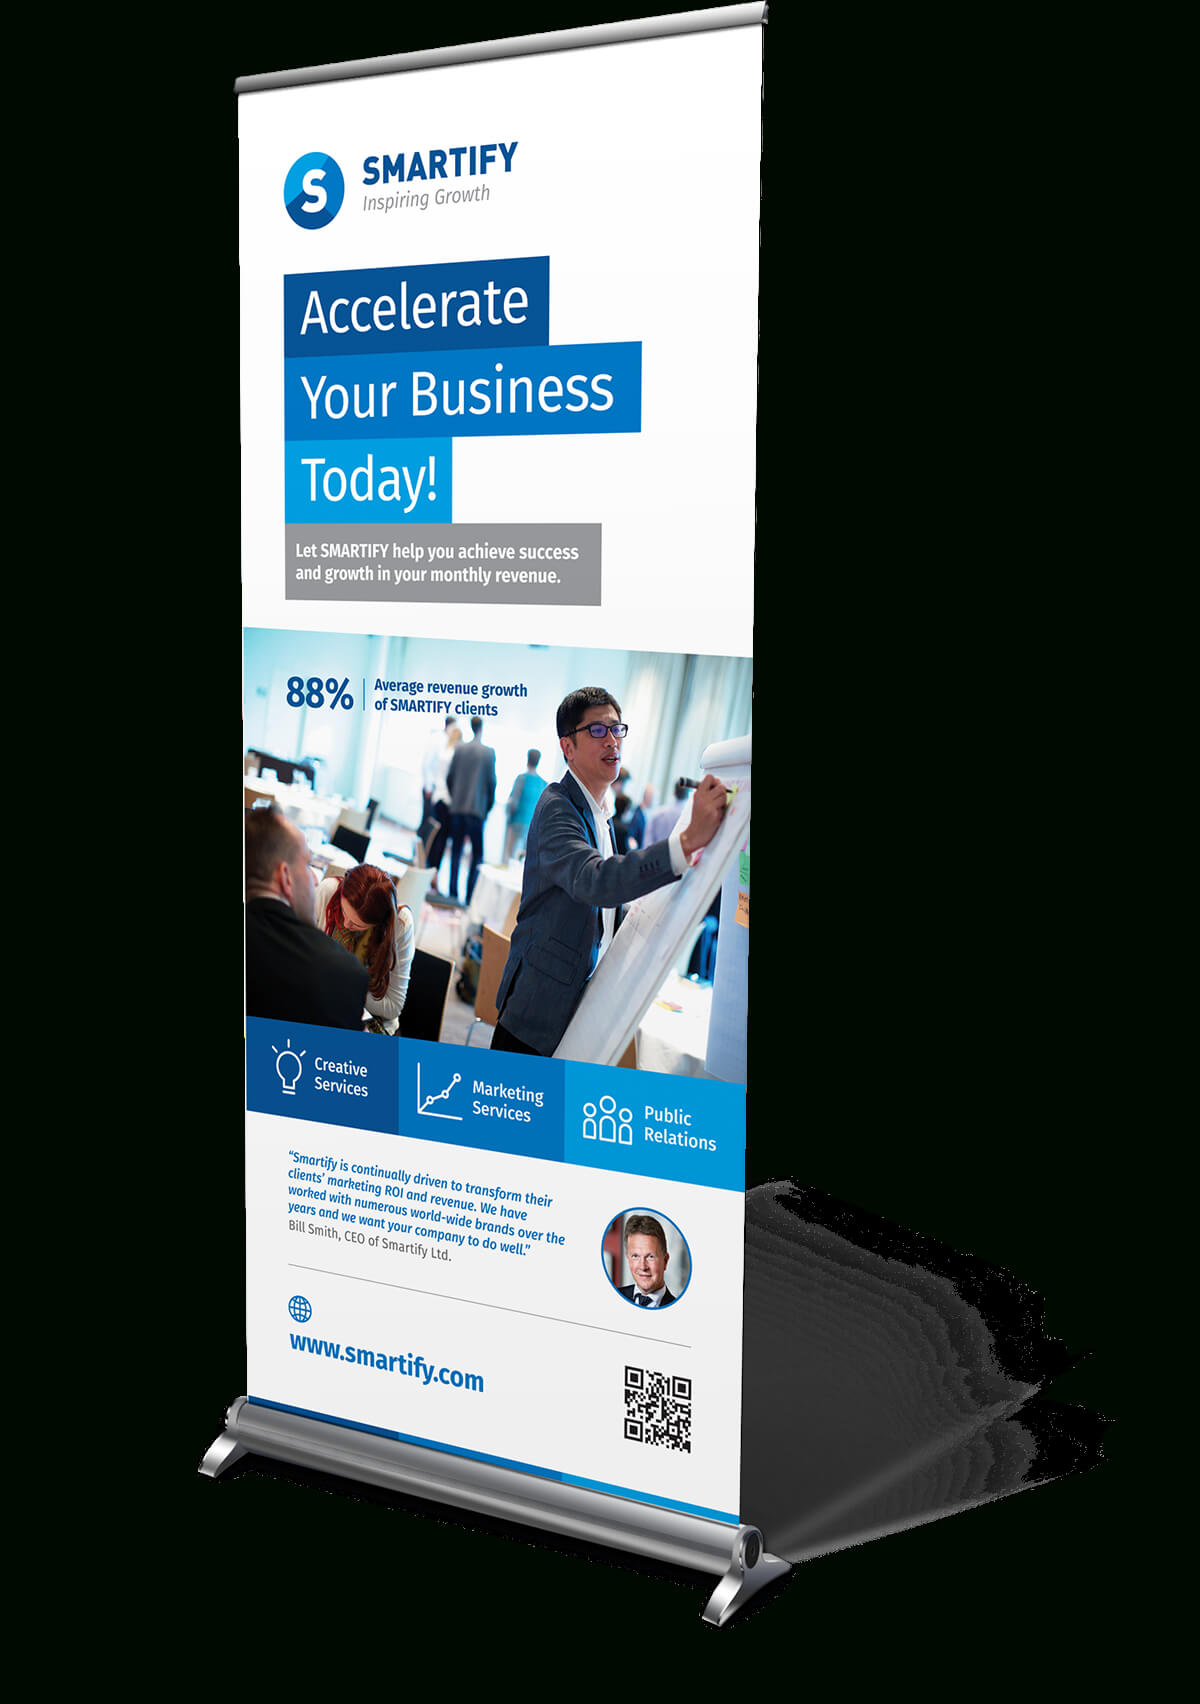 Corporate Business Roll Up Banners Template For Download Intended For Pop Up Banner Design Template